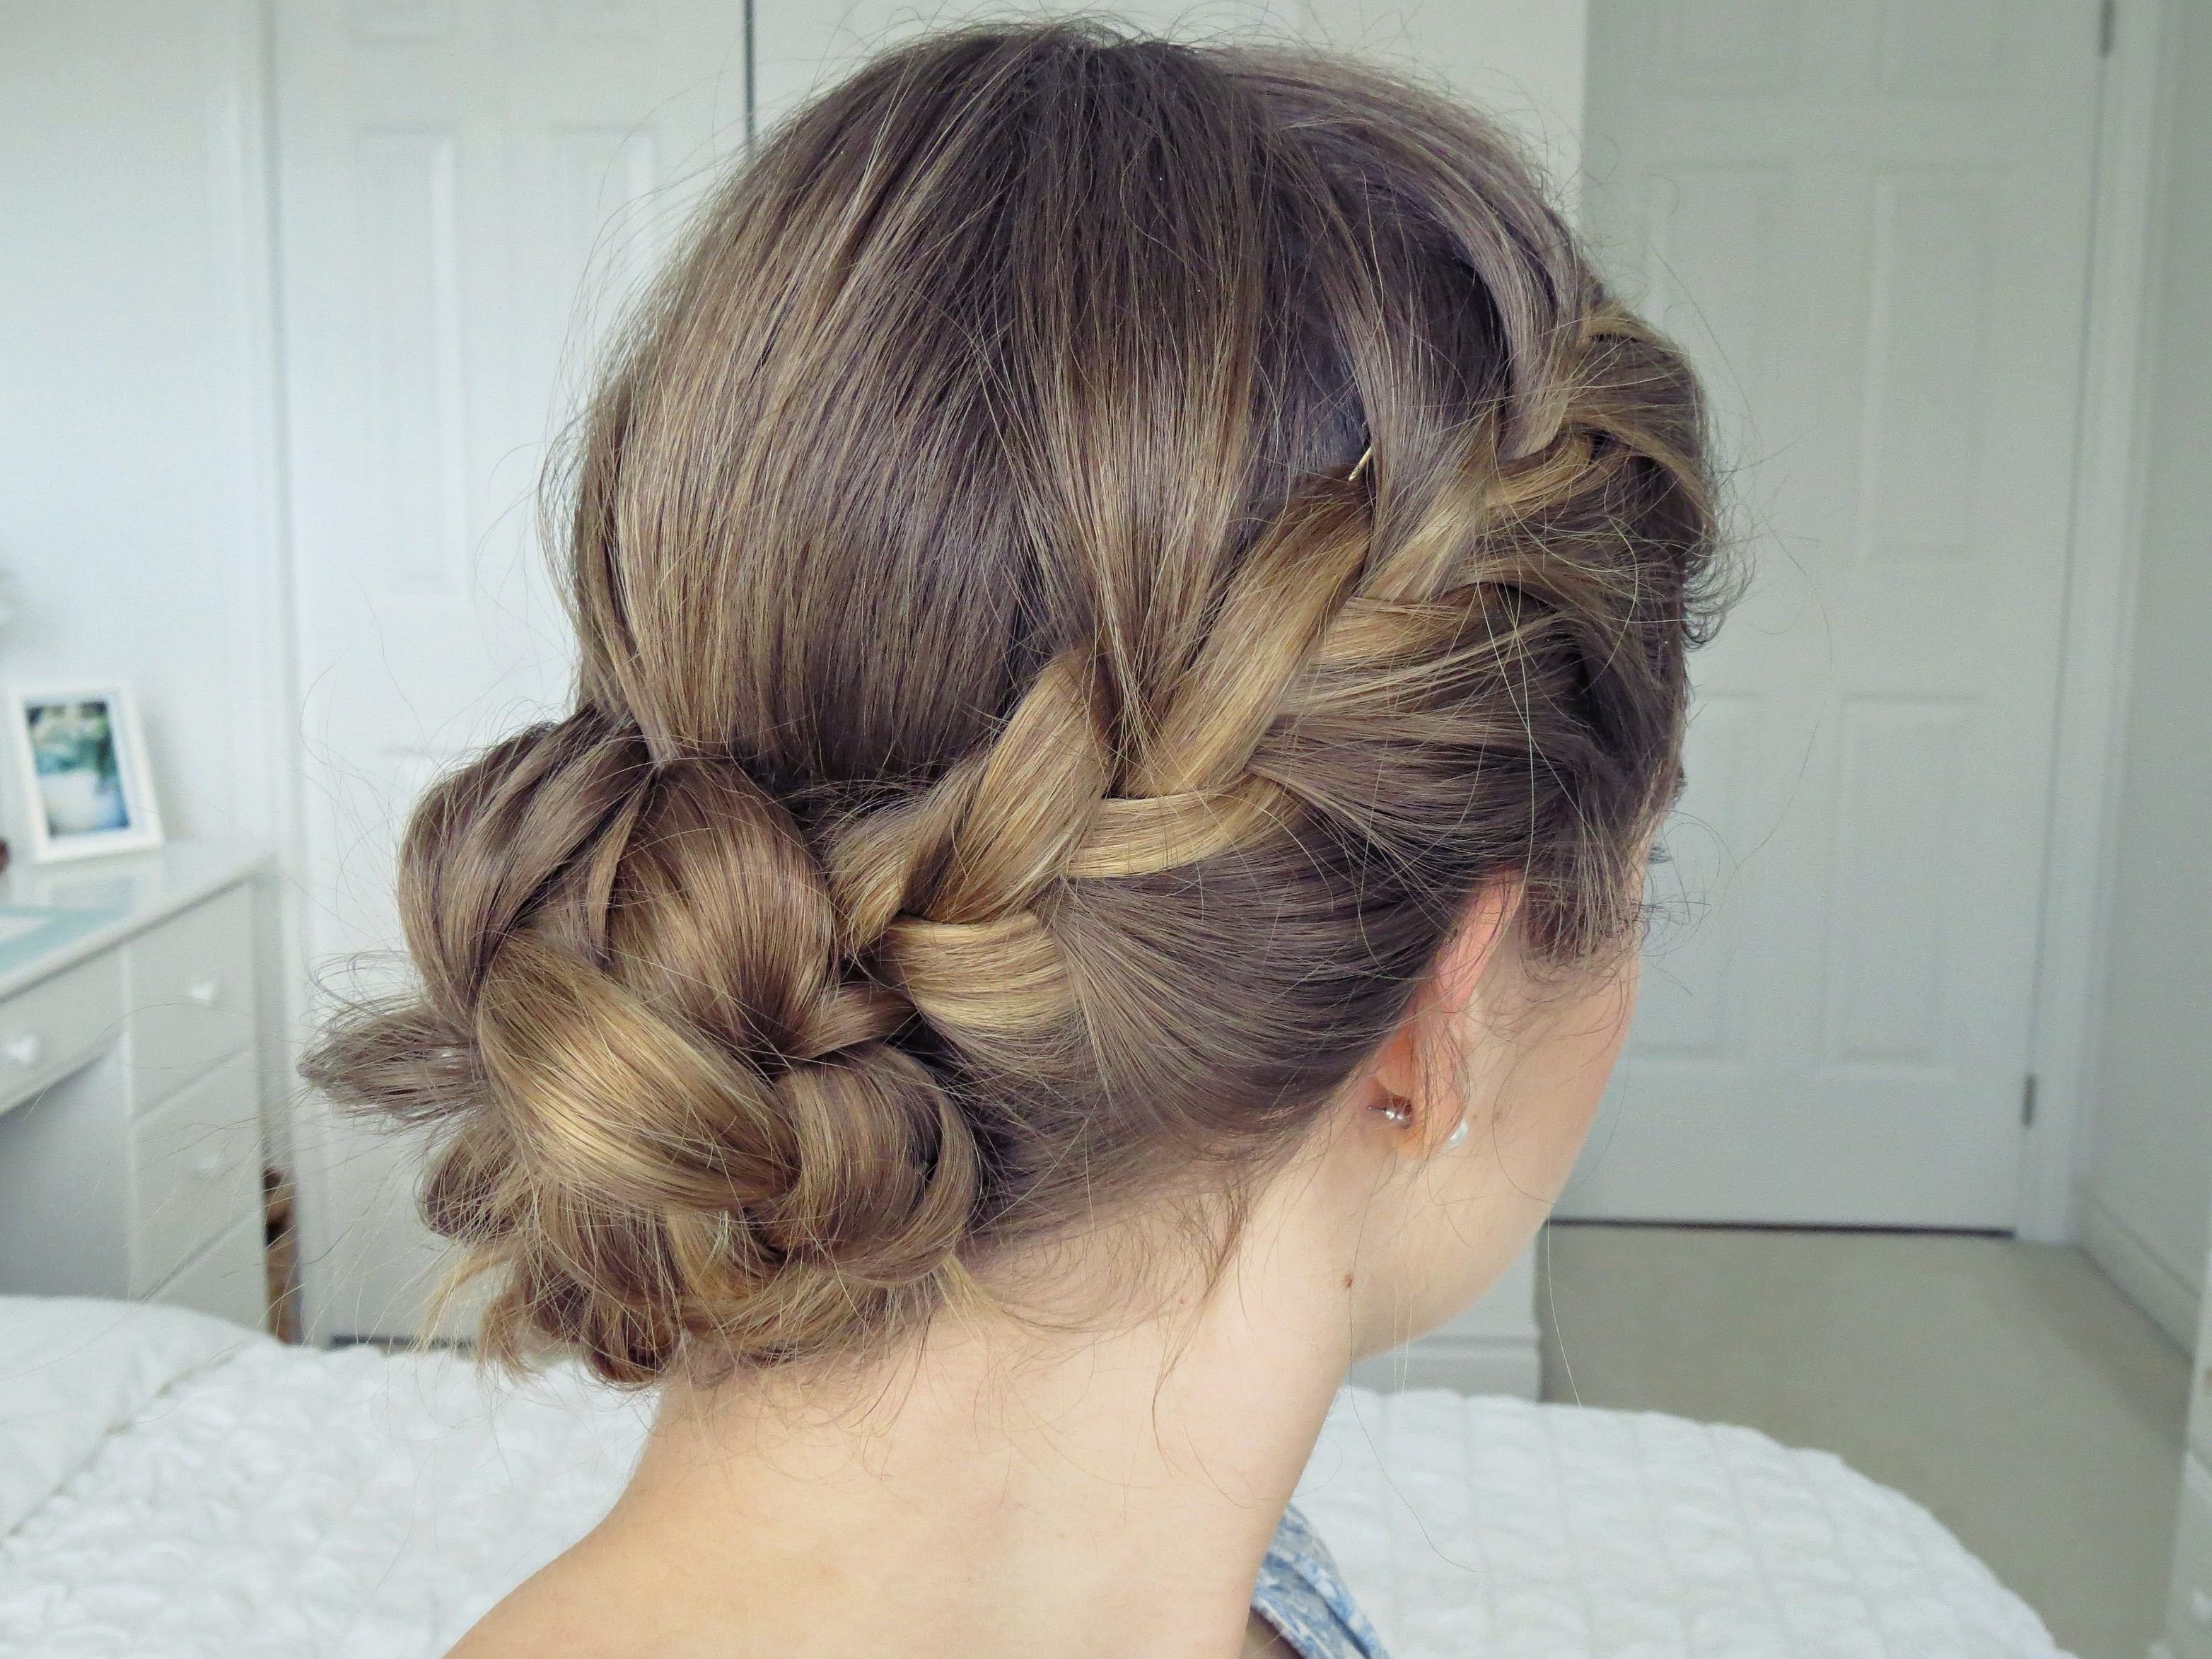 Bohemian Braid Updo | Hair Tutorial – Simple & Easy – Youtube In Boho Updos For Long Hair (View 6 of 15)